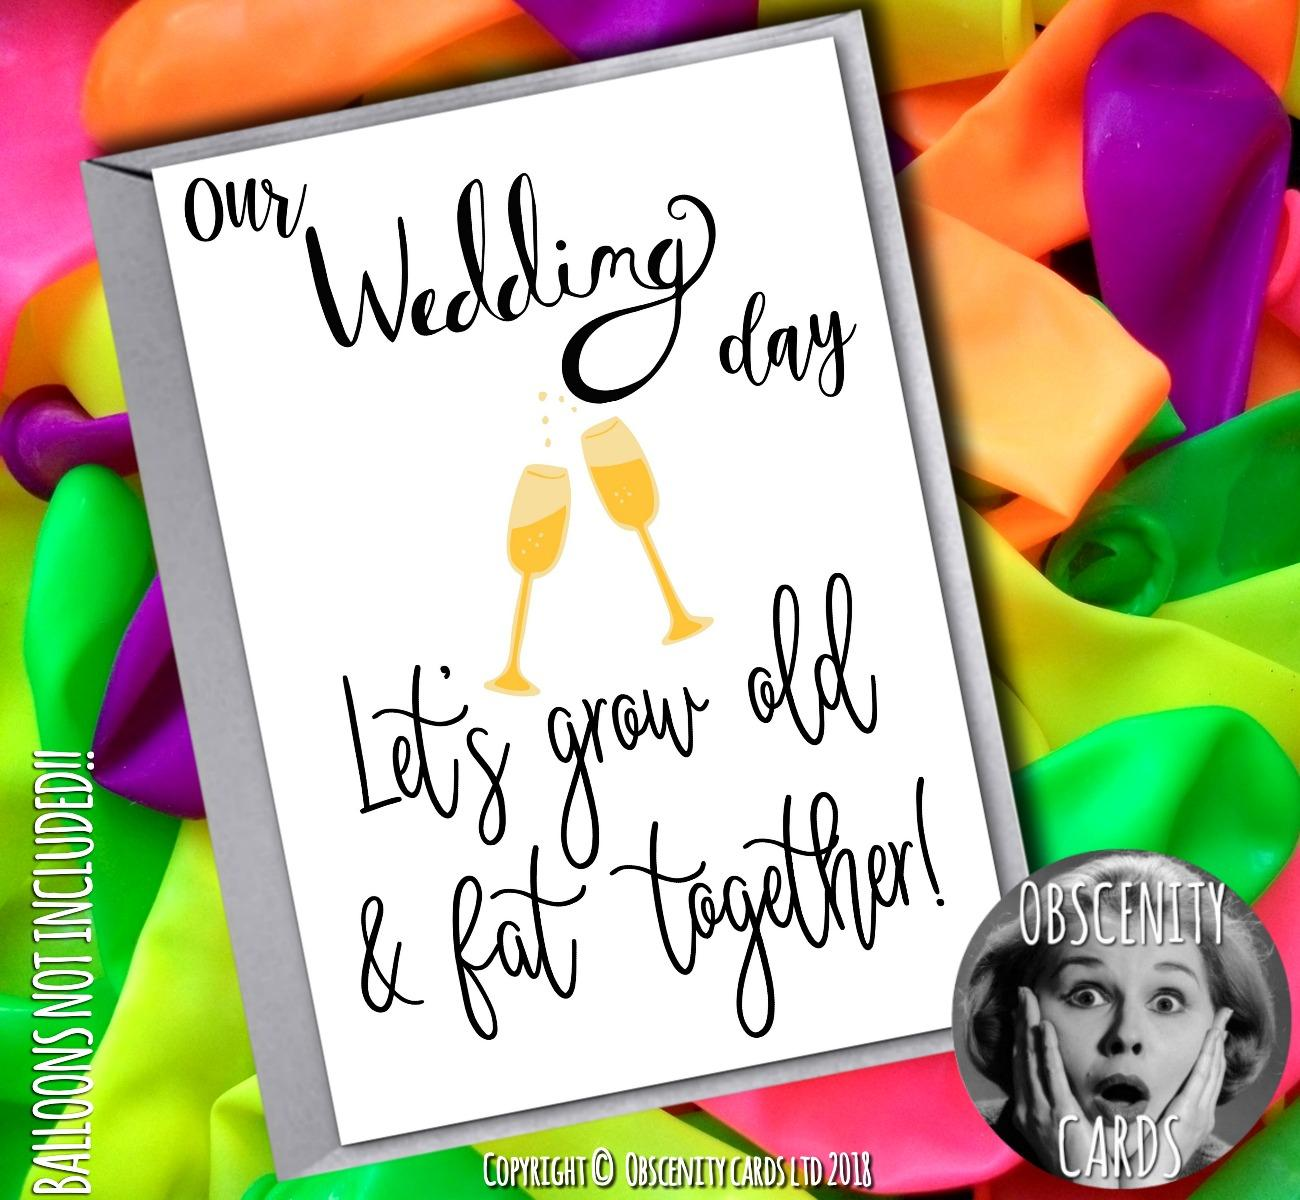 ON OUR WEDDING DAY, LET'S GROW OLD AND FAT TOGETHER Obscene funny offensive birthday cards by Obscenity cards. Obscene Funny Cards, Pens, Party Hats, Key rings, Magnets, Lighters & Loads More!